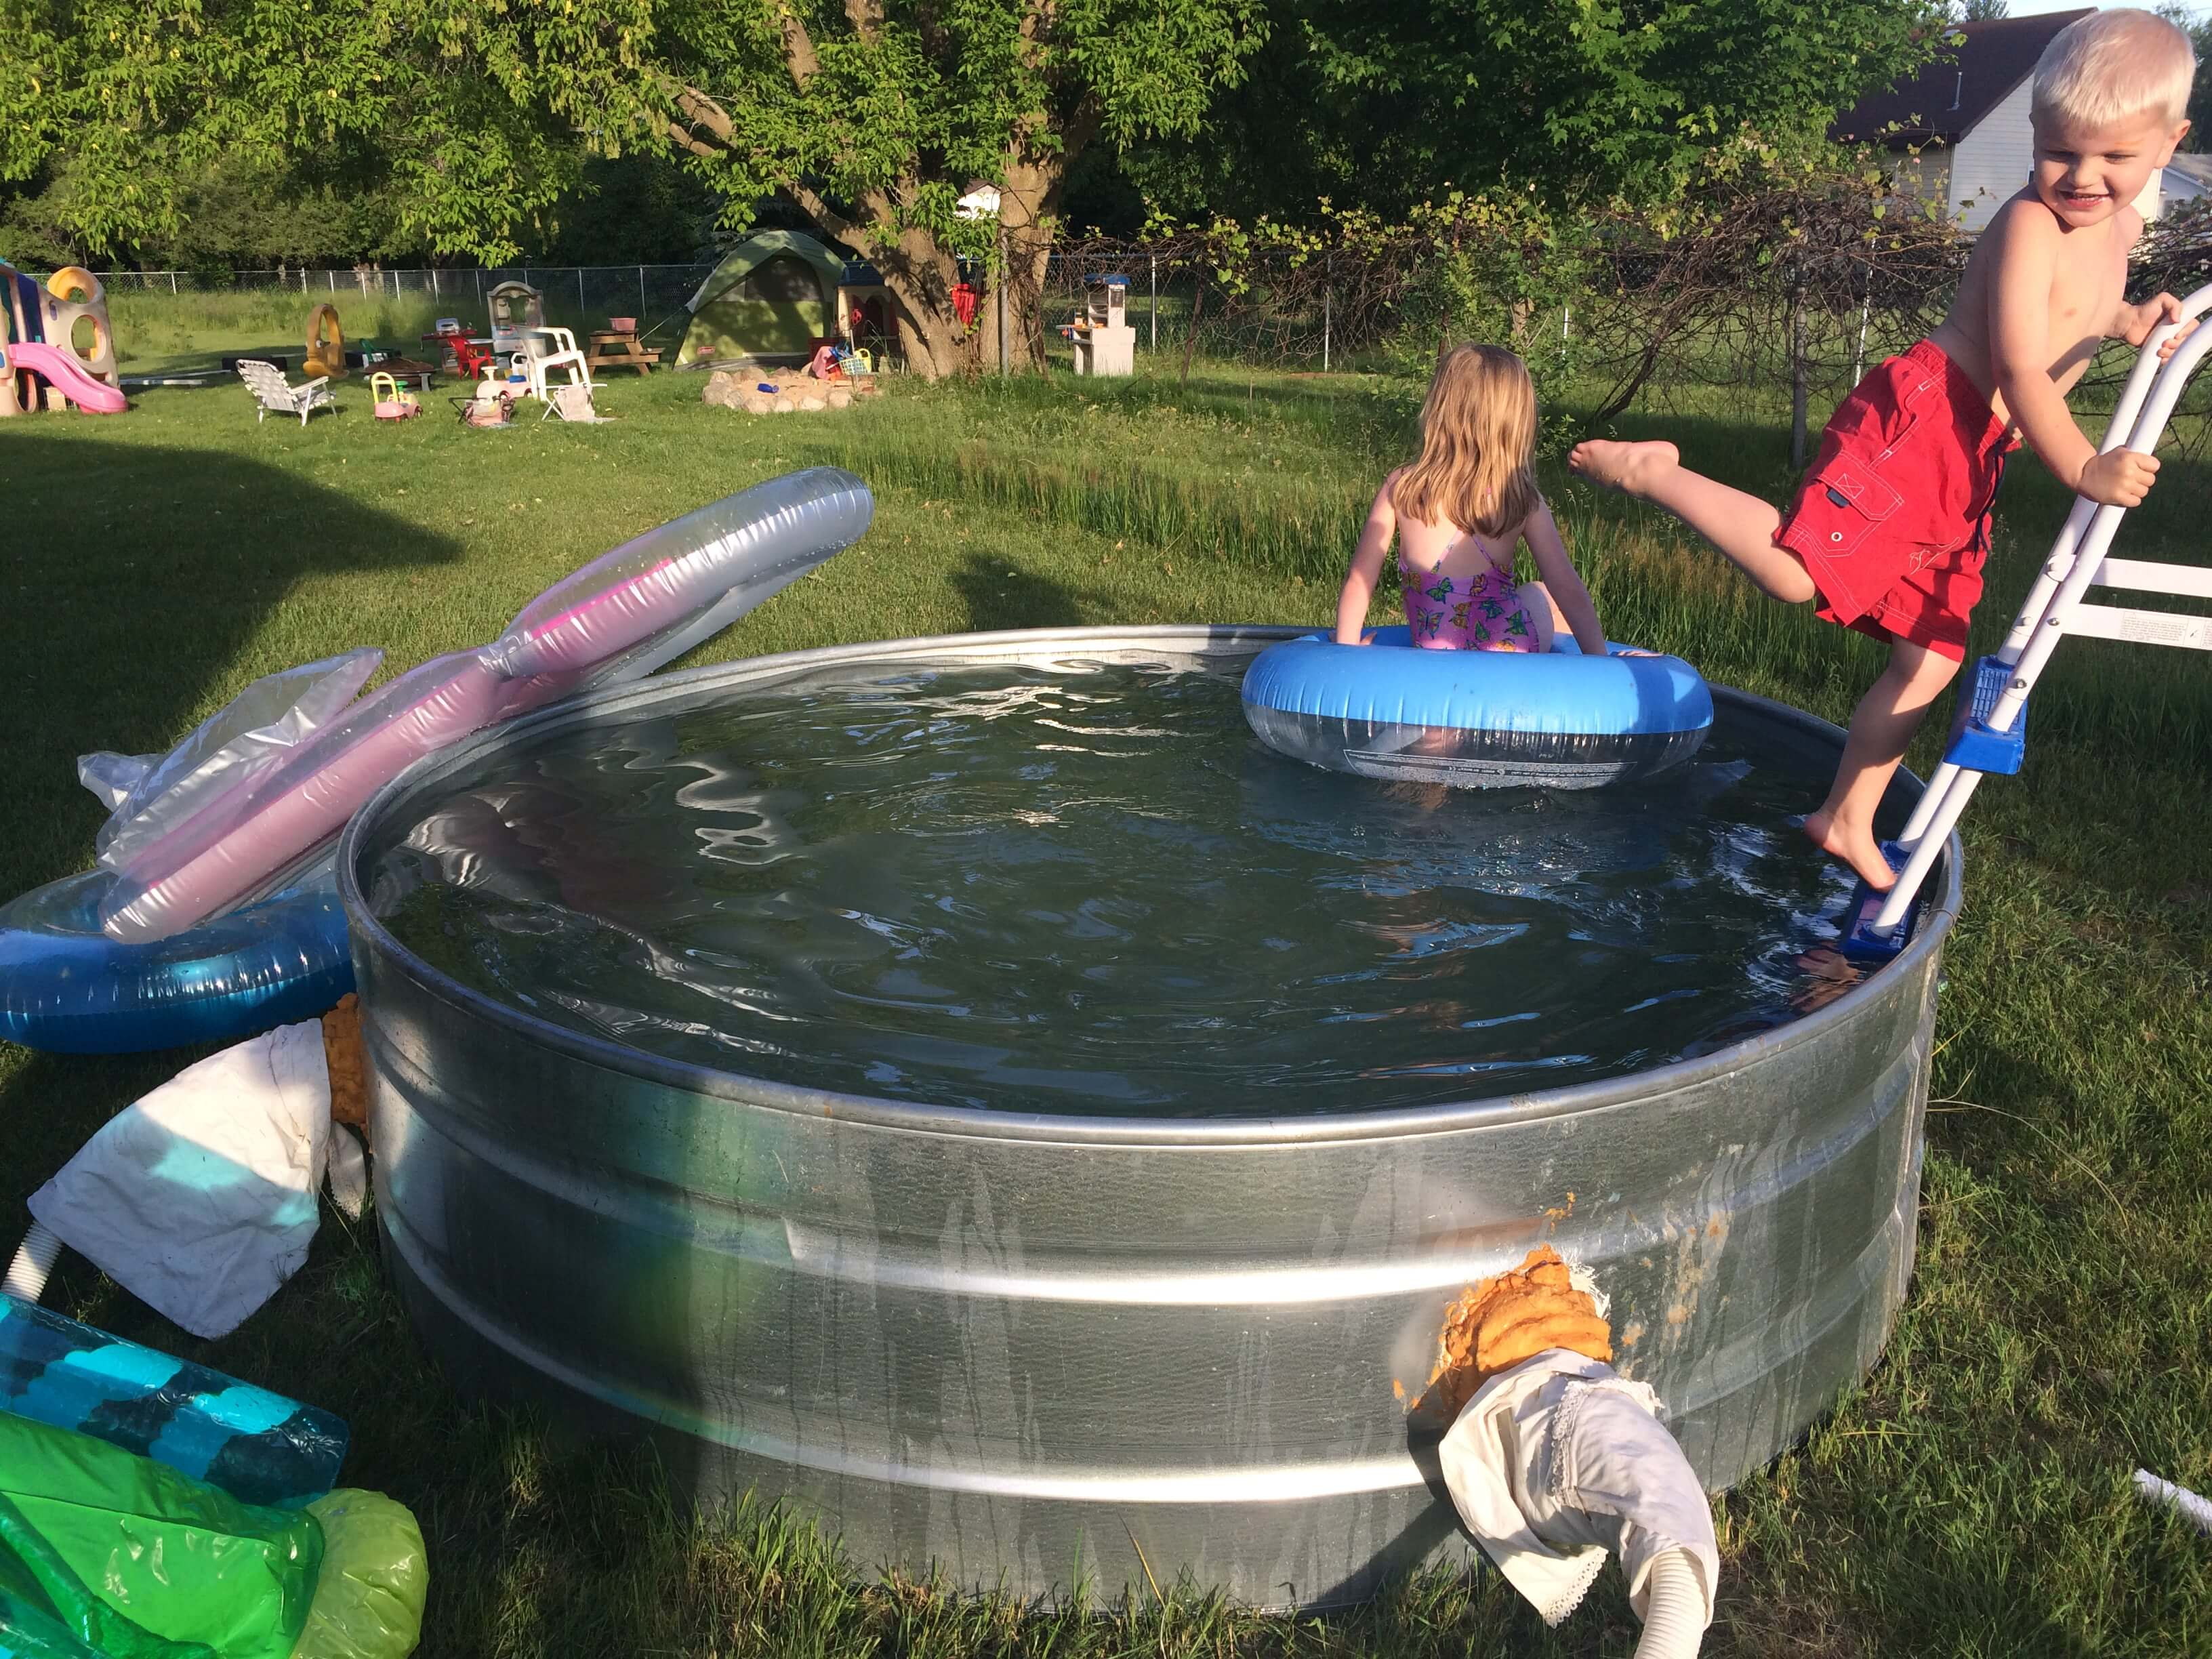 Stock-tank pools are the cheap and friendly investment for summer